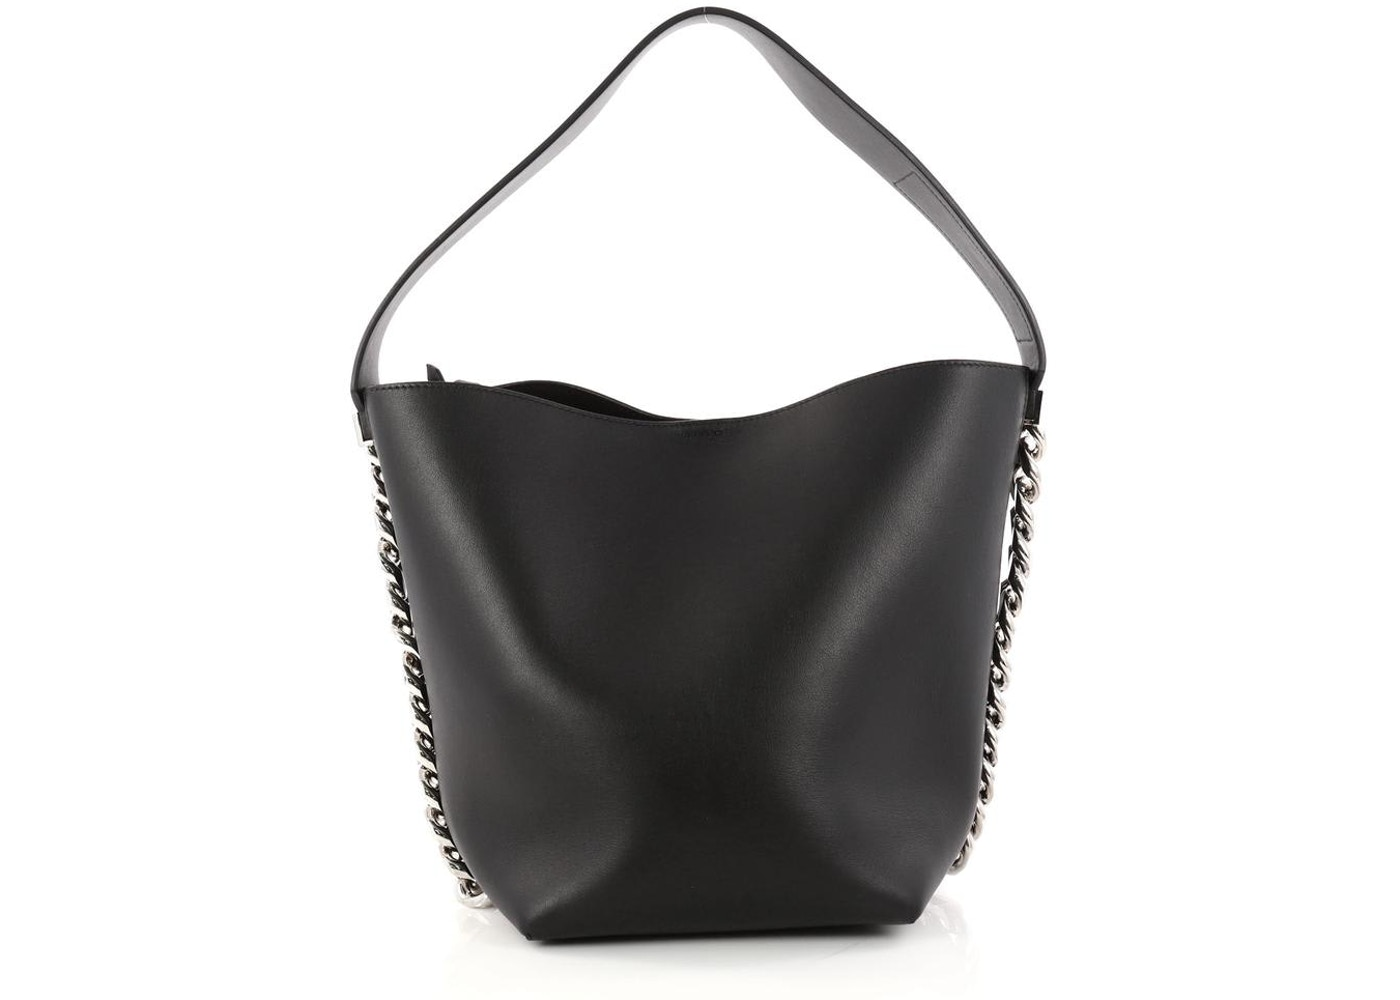 5d749ffd128 Buy   Sell Givenchy Other Handbags